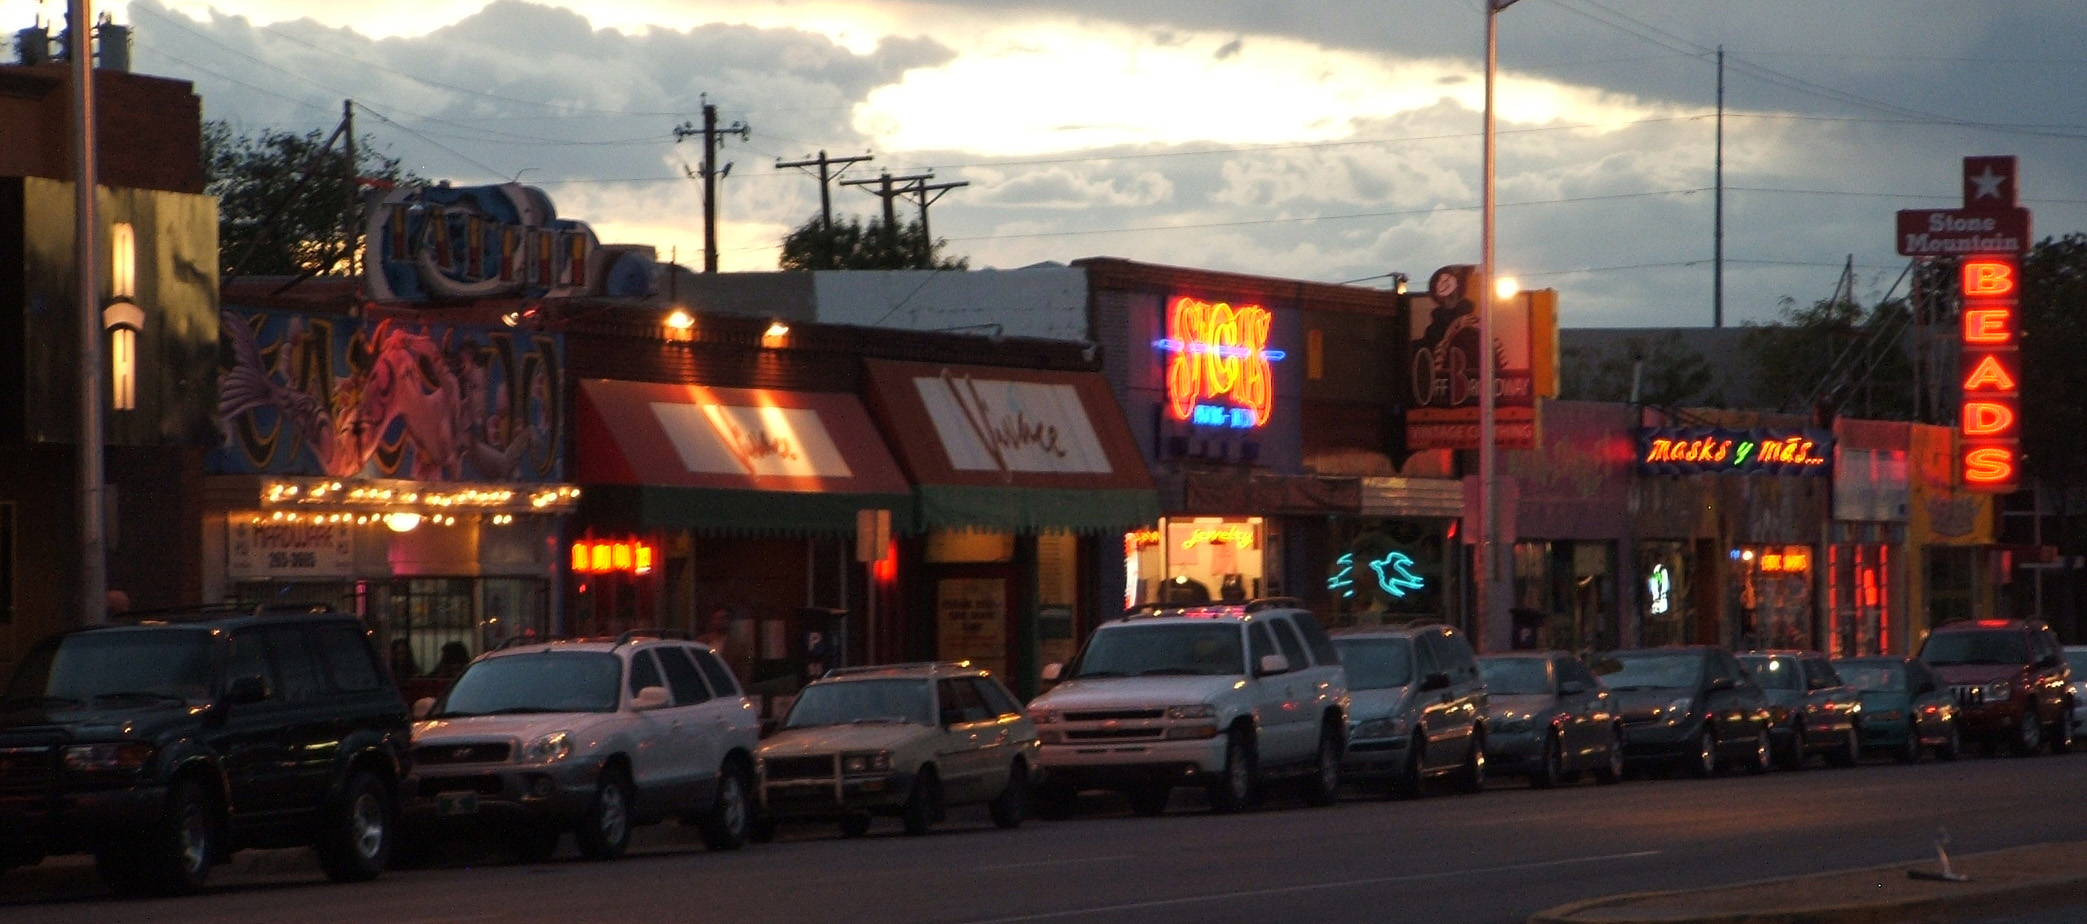 Best Albuquerque Restaurants Nob Hill